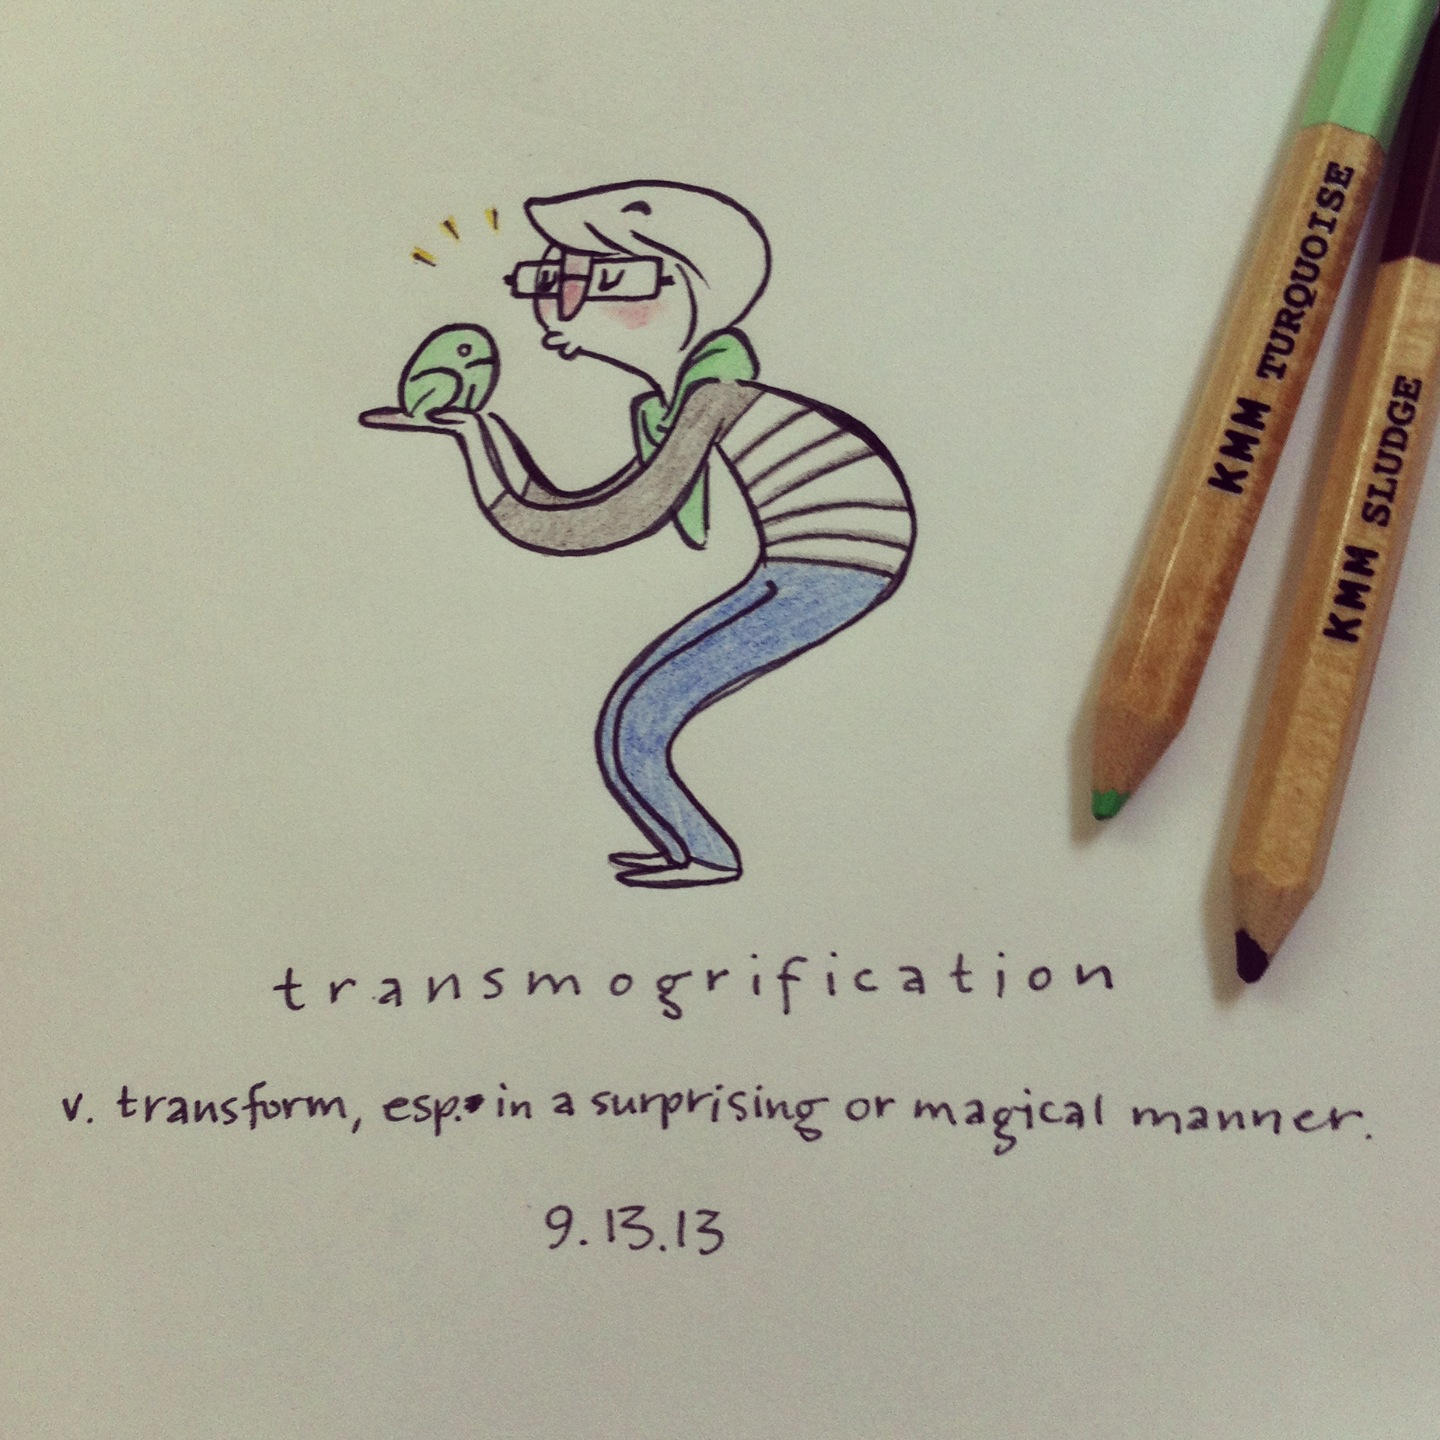 Thanks to Calvin and Hobbes, I know how to make a Transmogrifier. I believe it involves a cardboard box and a sharpie.